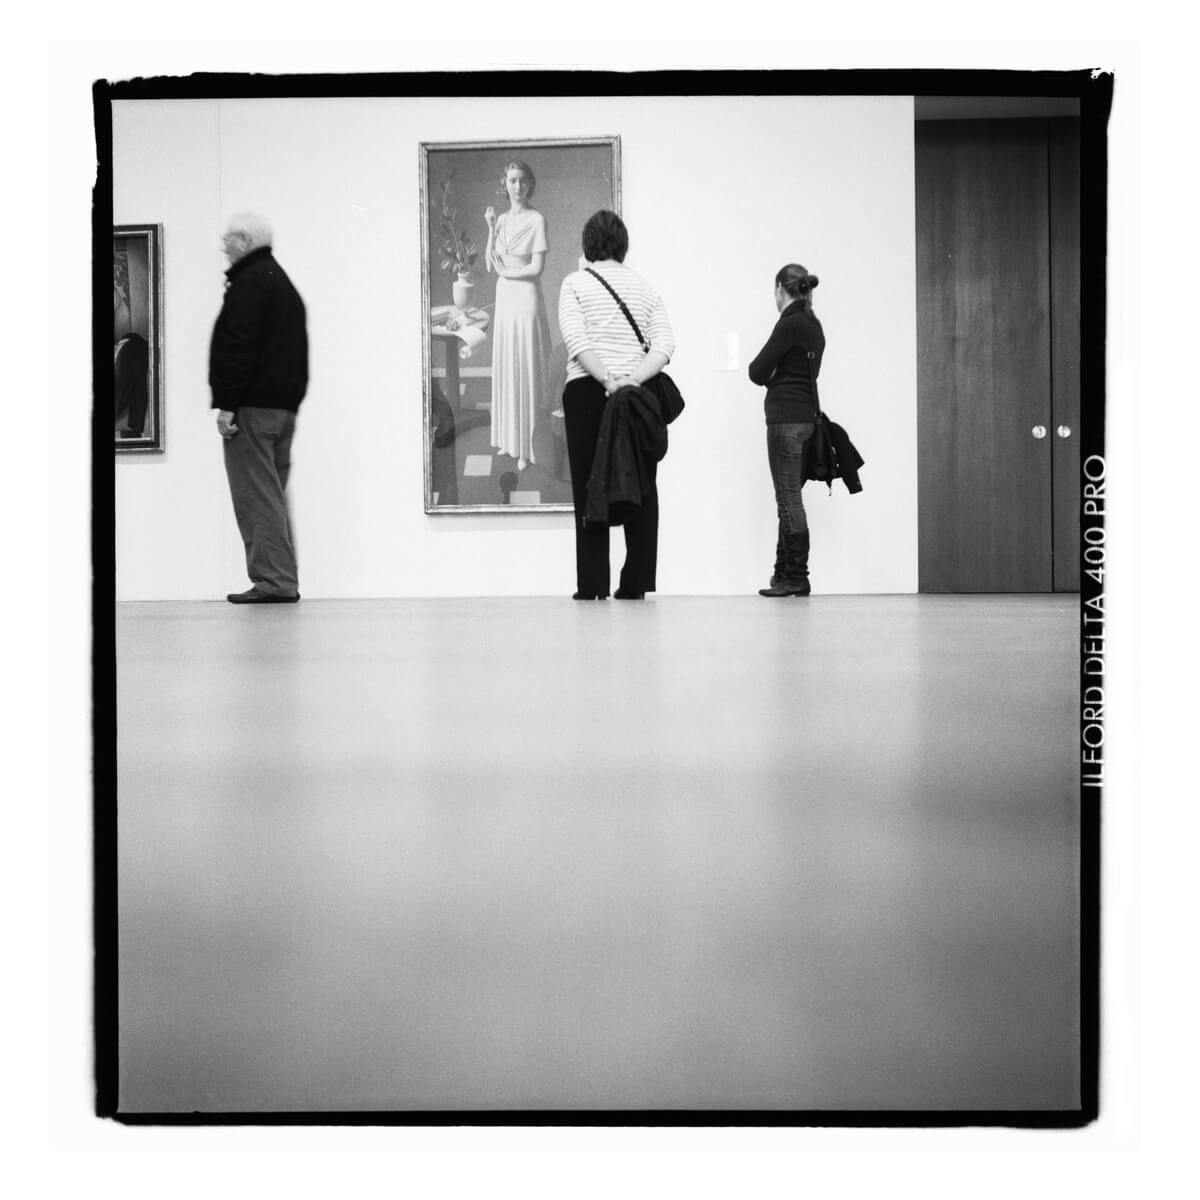 London, Gallery Visitors, Fotograf Steffen Lohse